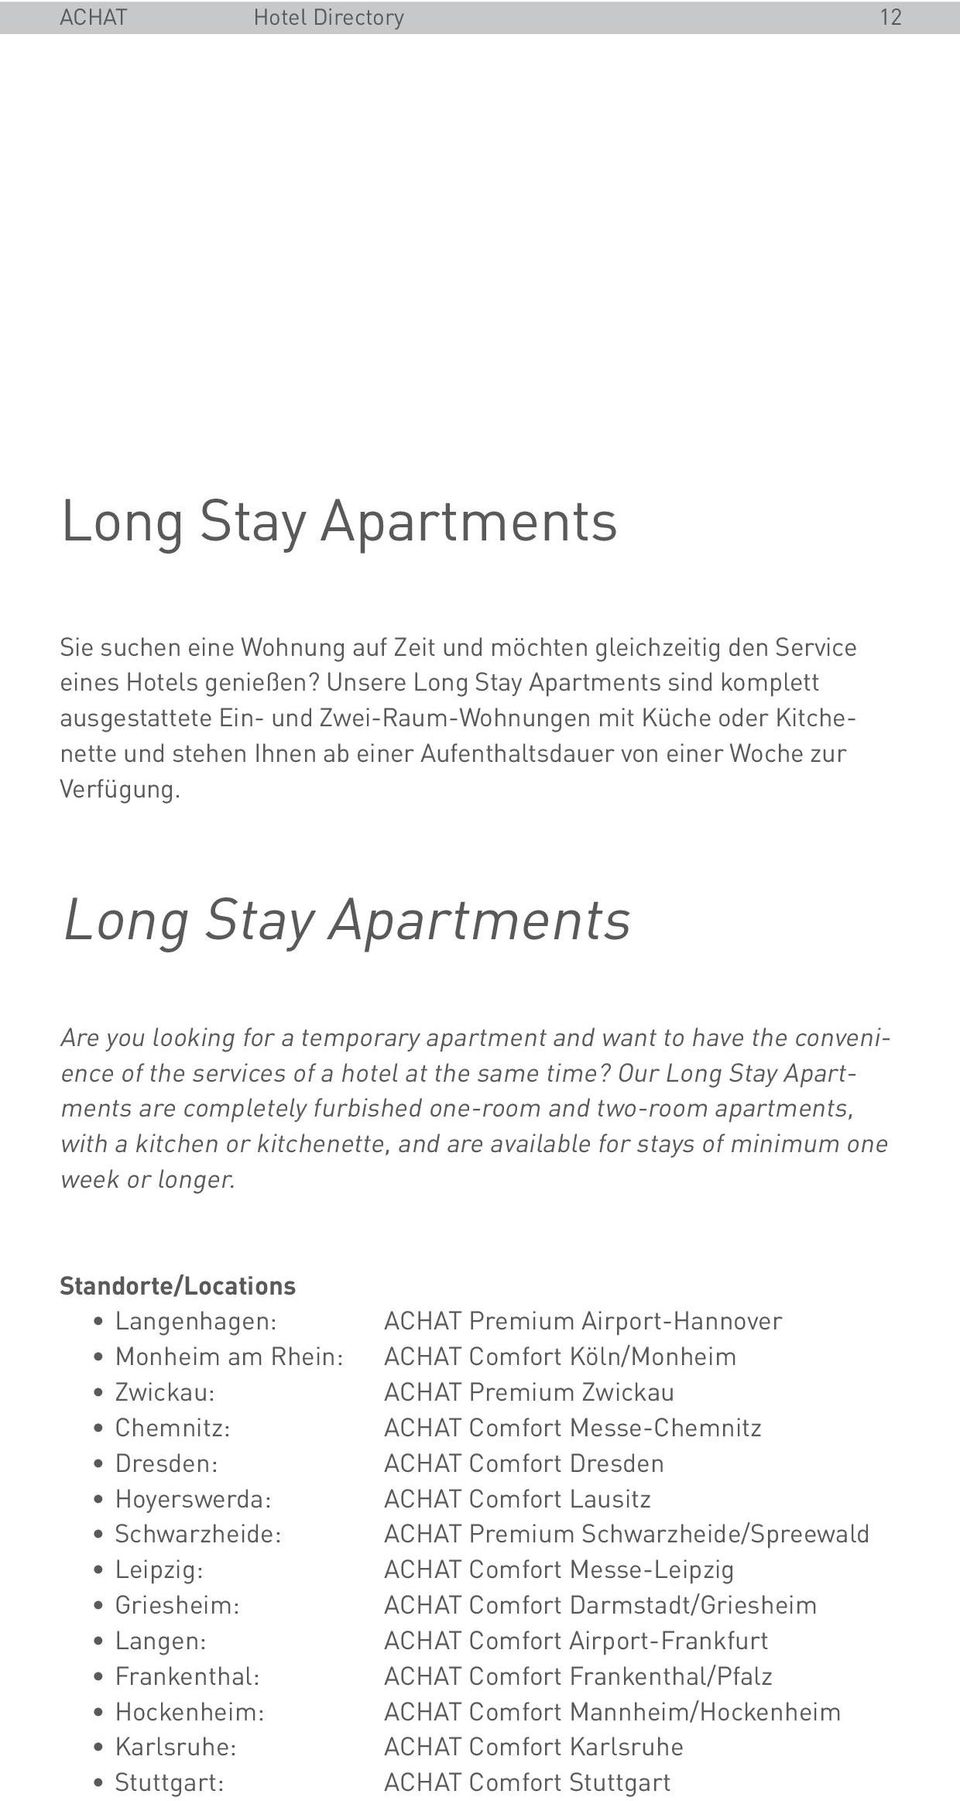 Long Stay Apartments Are you looking for a temporary apartment and want to have the convenience of the services of a hotel at the same time?